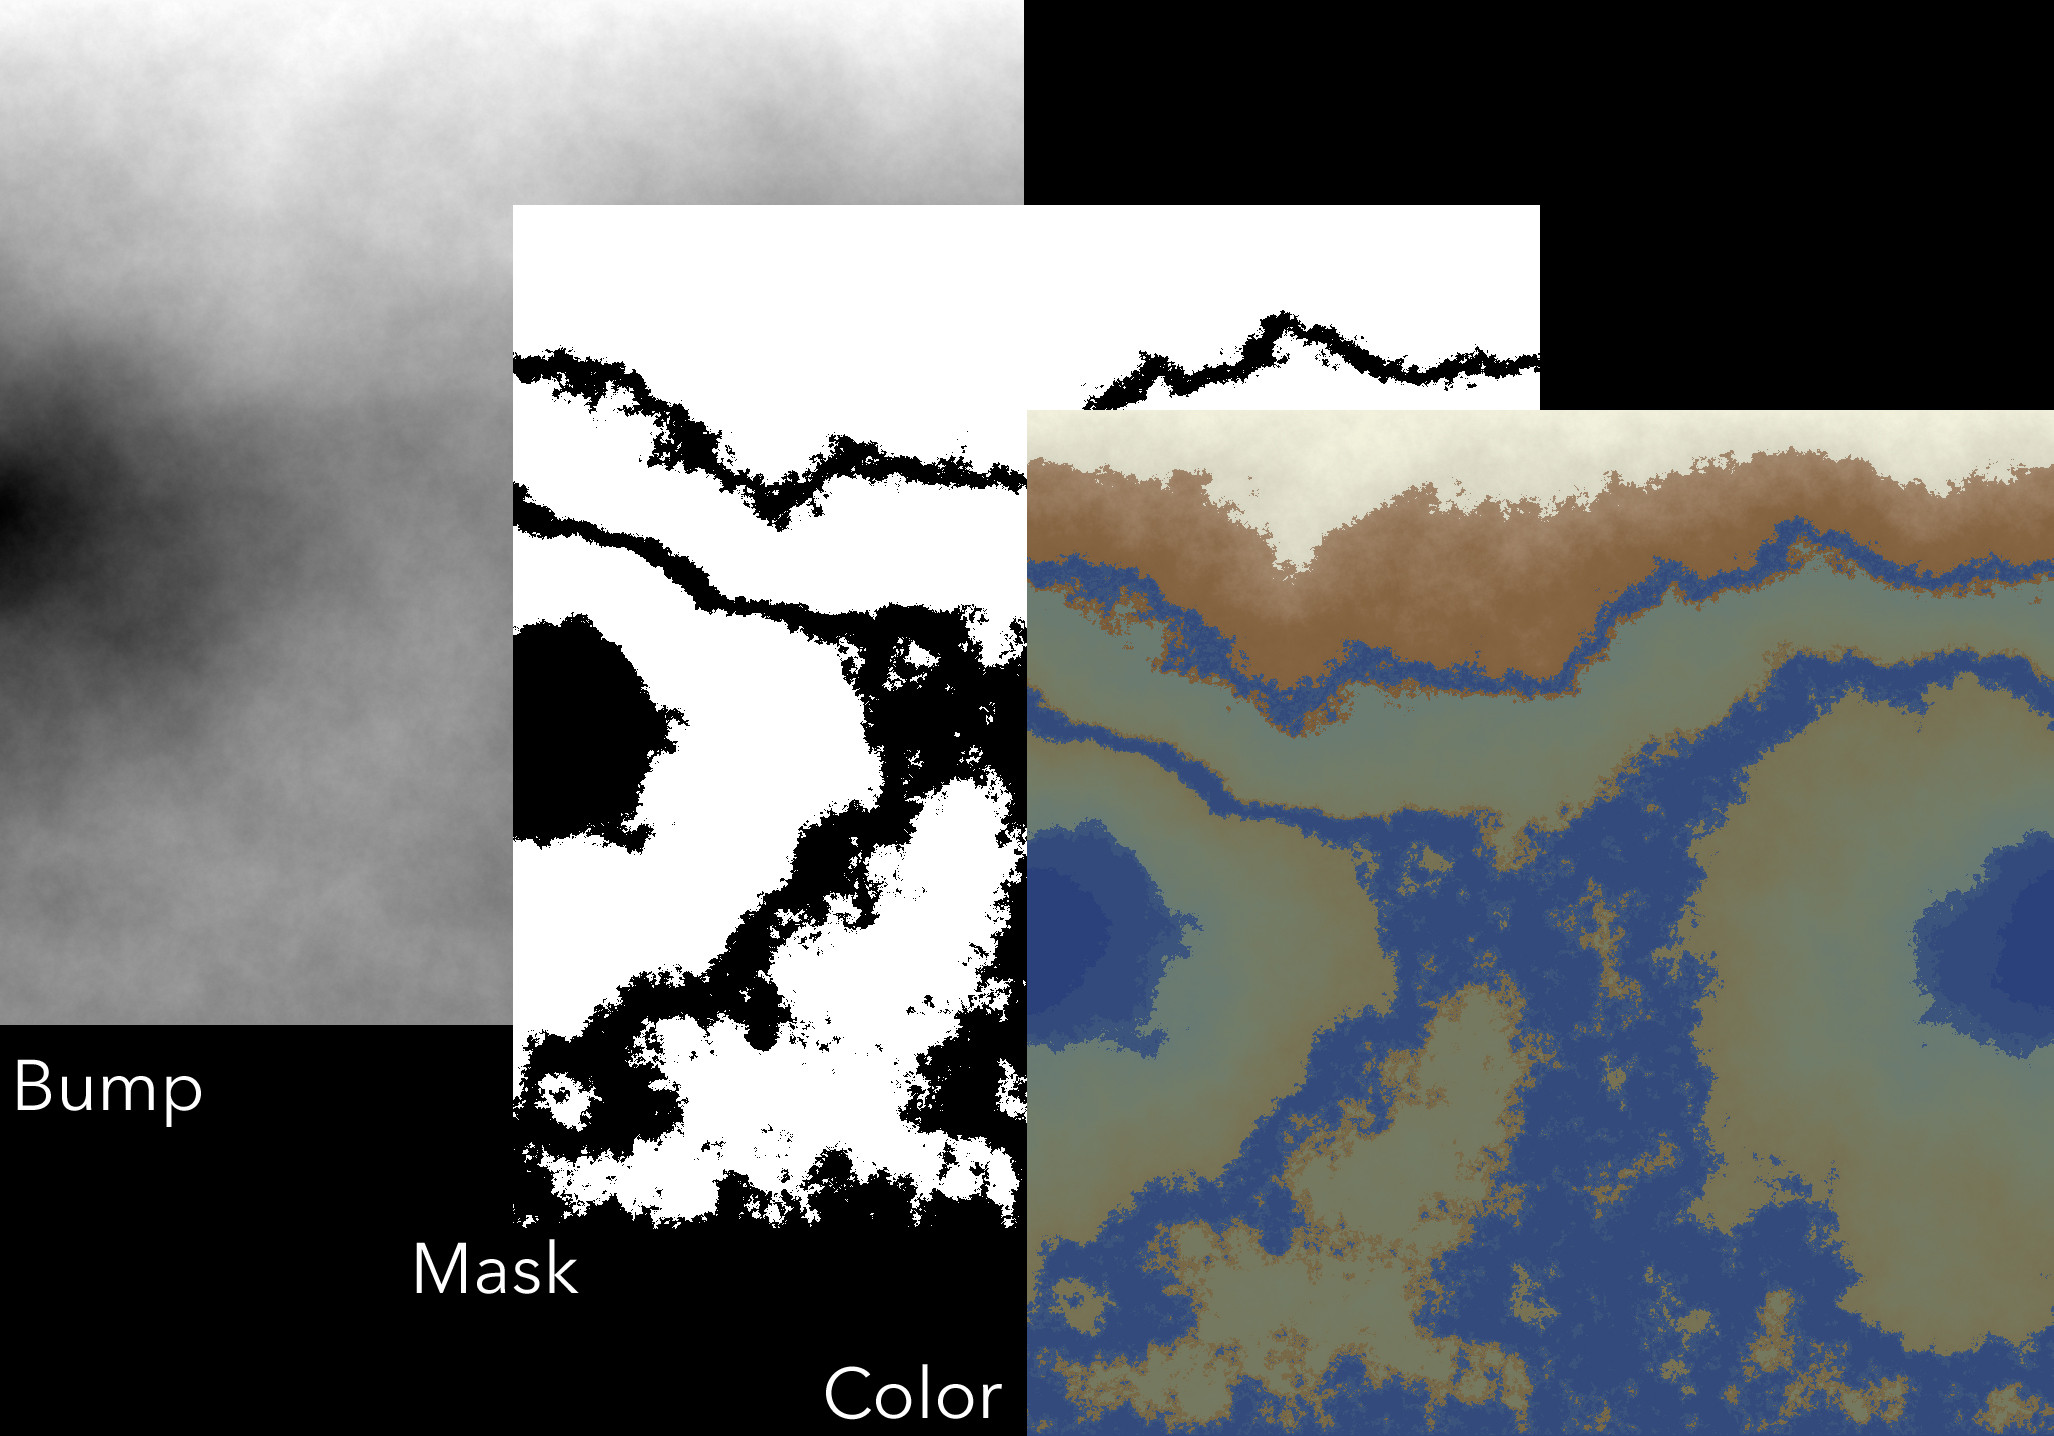 I used Mathematica to generate terrain maps for some of the planets. I used a diamond-square method, which I explain and provide a copy of the code on my blog.